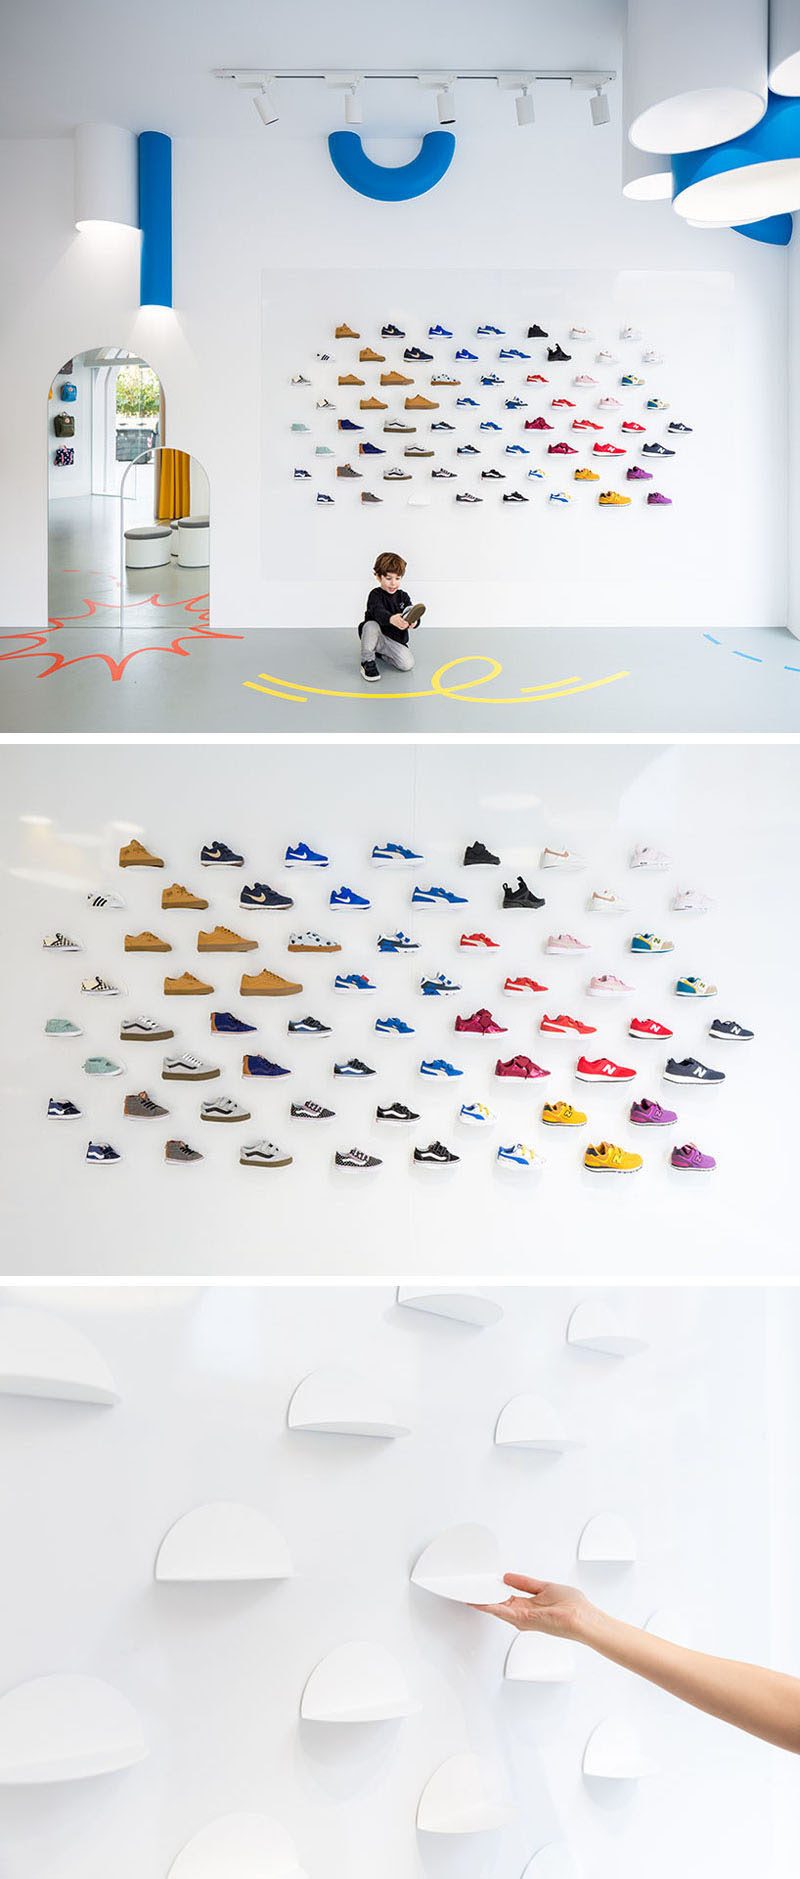 In this modern retail store, magnetic display plates on the walls and movable stands on the floor allow the design and layout to be changed when needed. #ShoeDisplay #ModernRetailStore